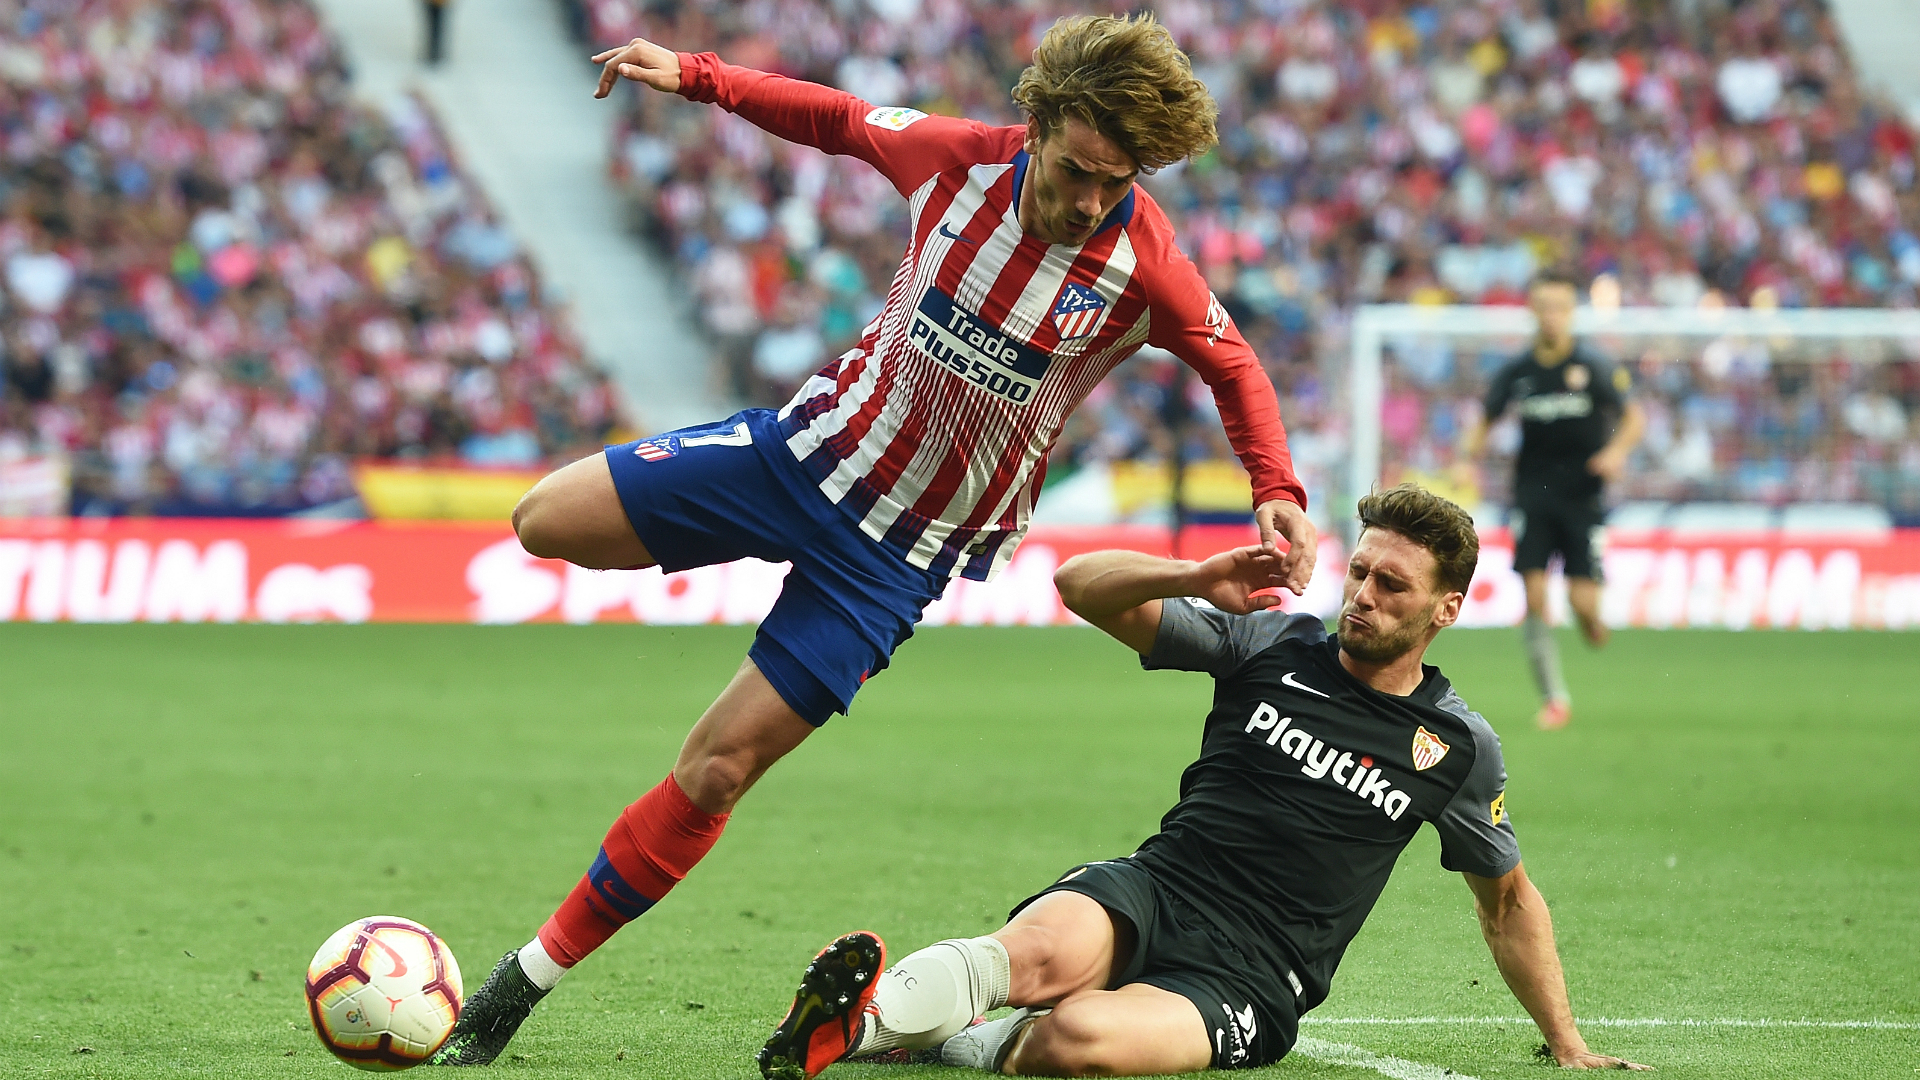 Antoine Griezmann transfer: France star confirms he is leaving Atletico Madrid